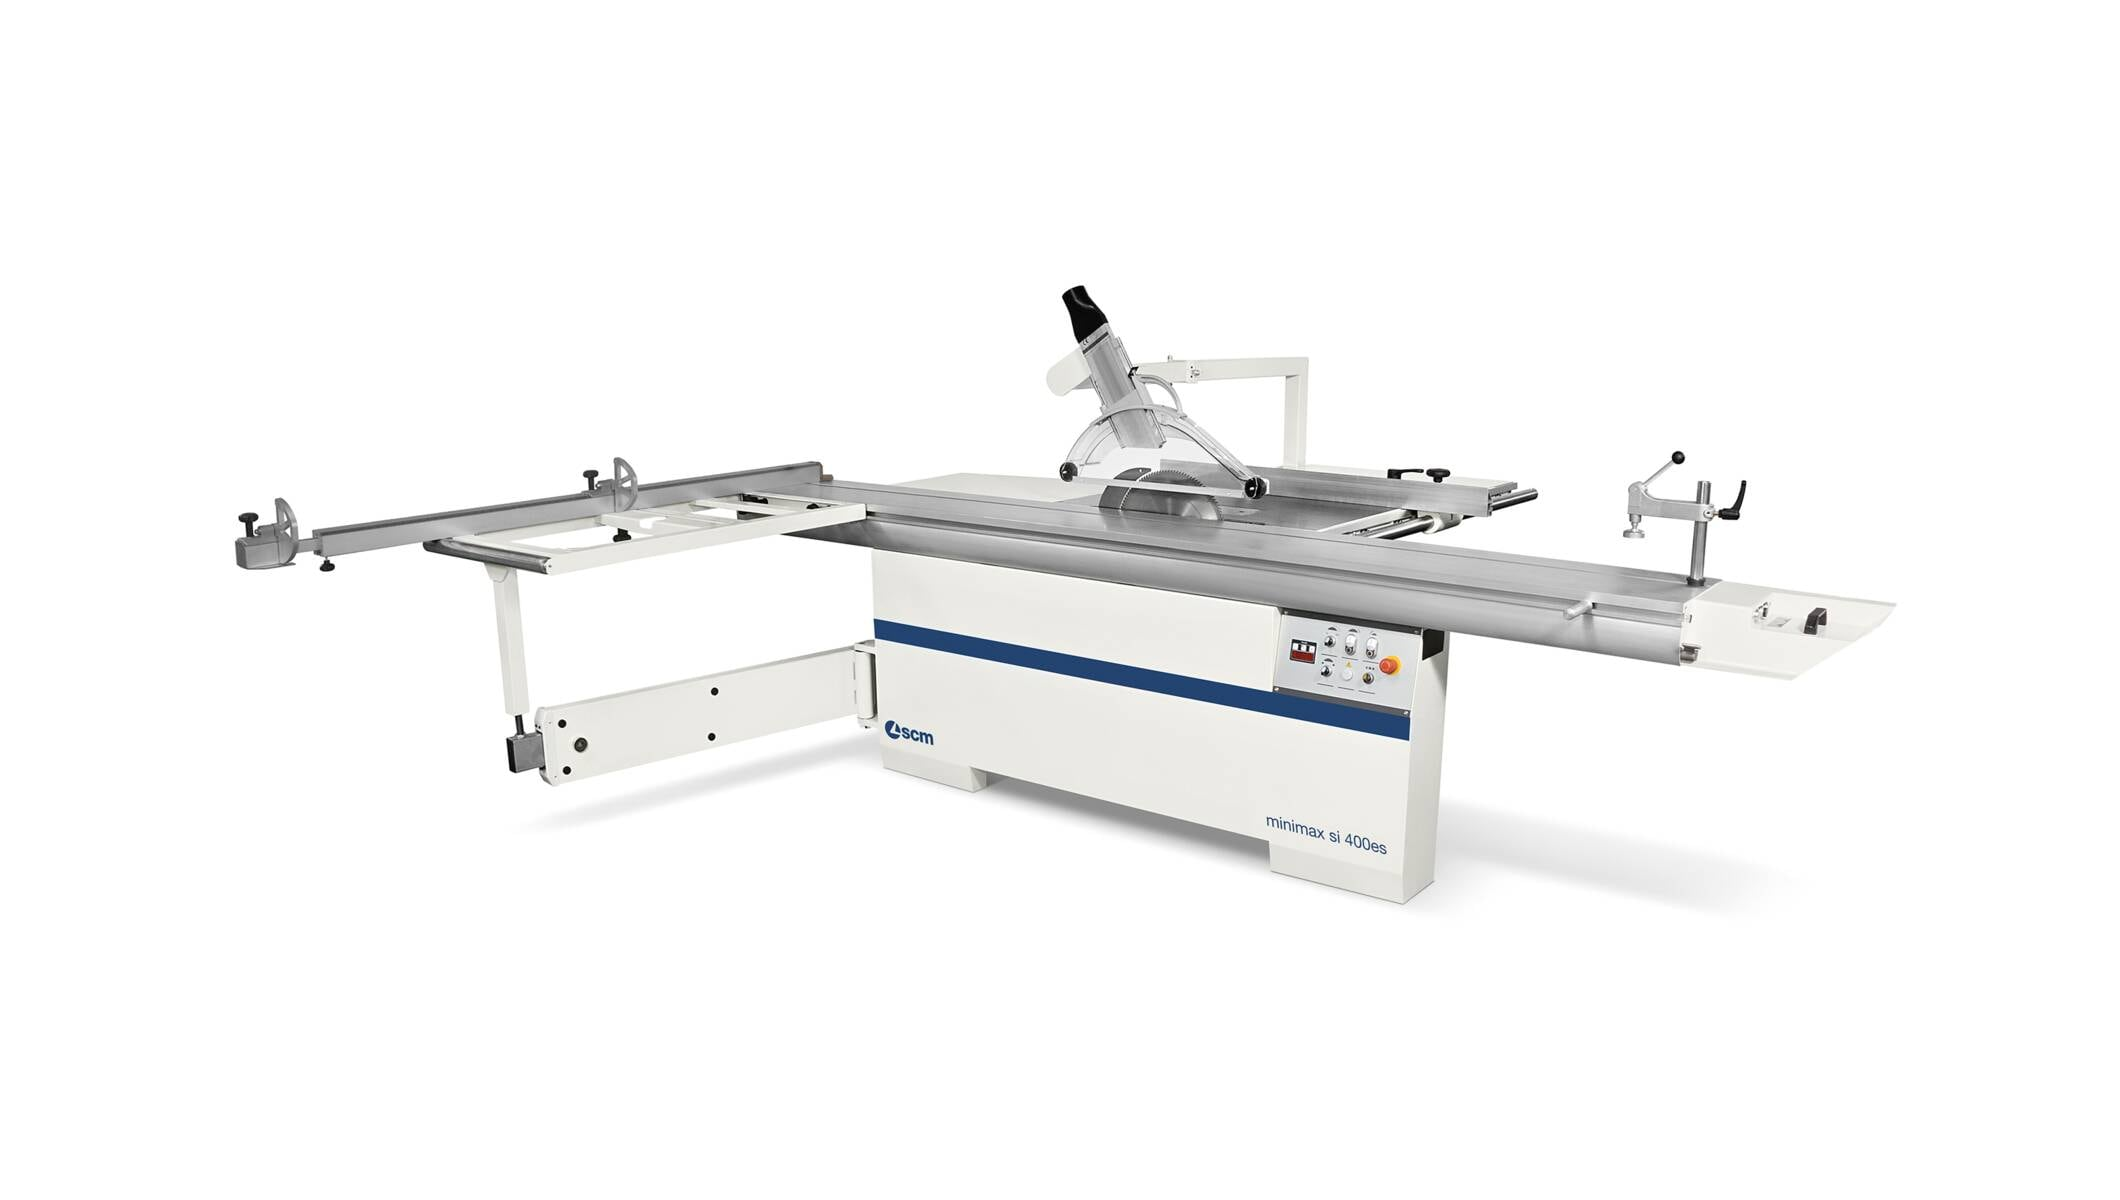 Joinery machines - Sliding table saws - minimax si 400es